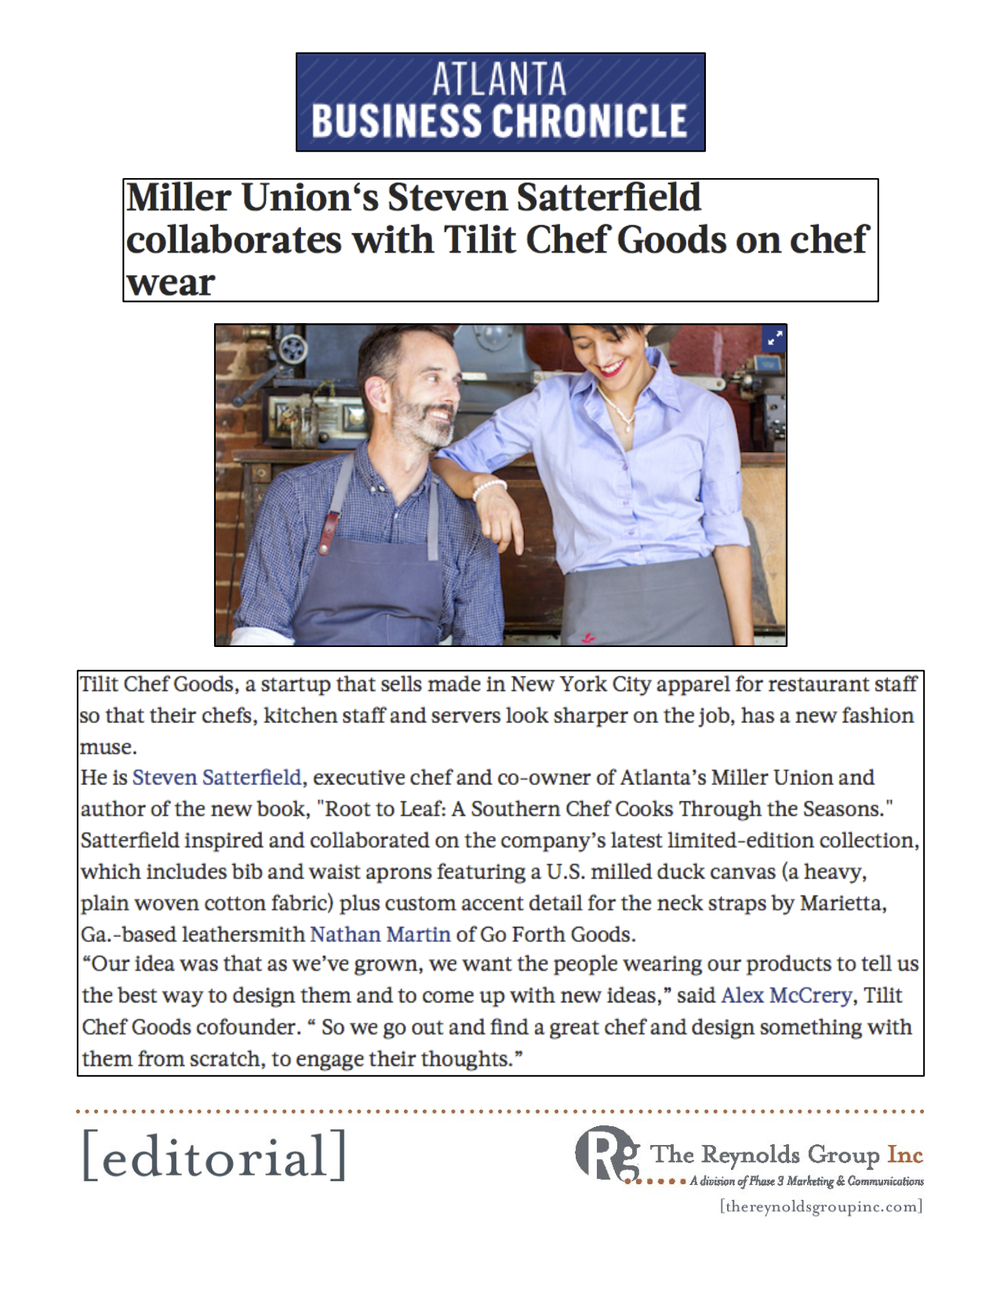 11.16.15.MillerUnion.ATL Business Chronicle.jpg